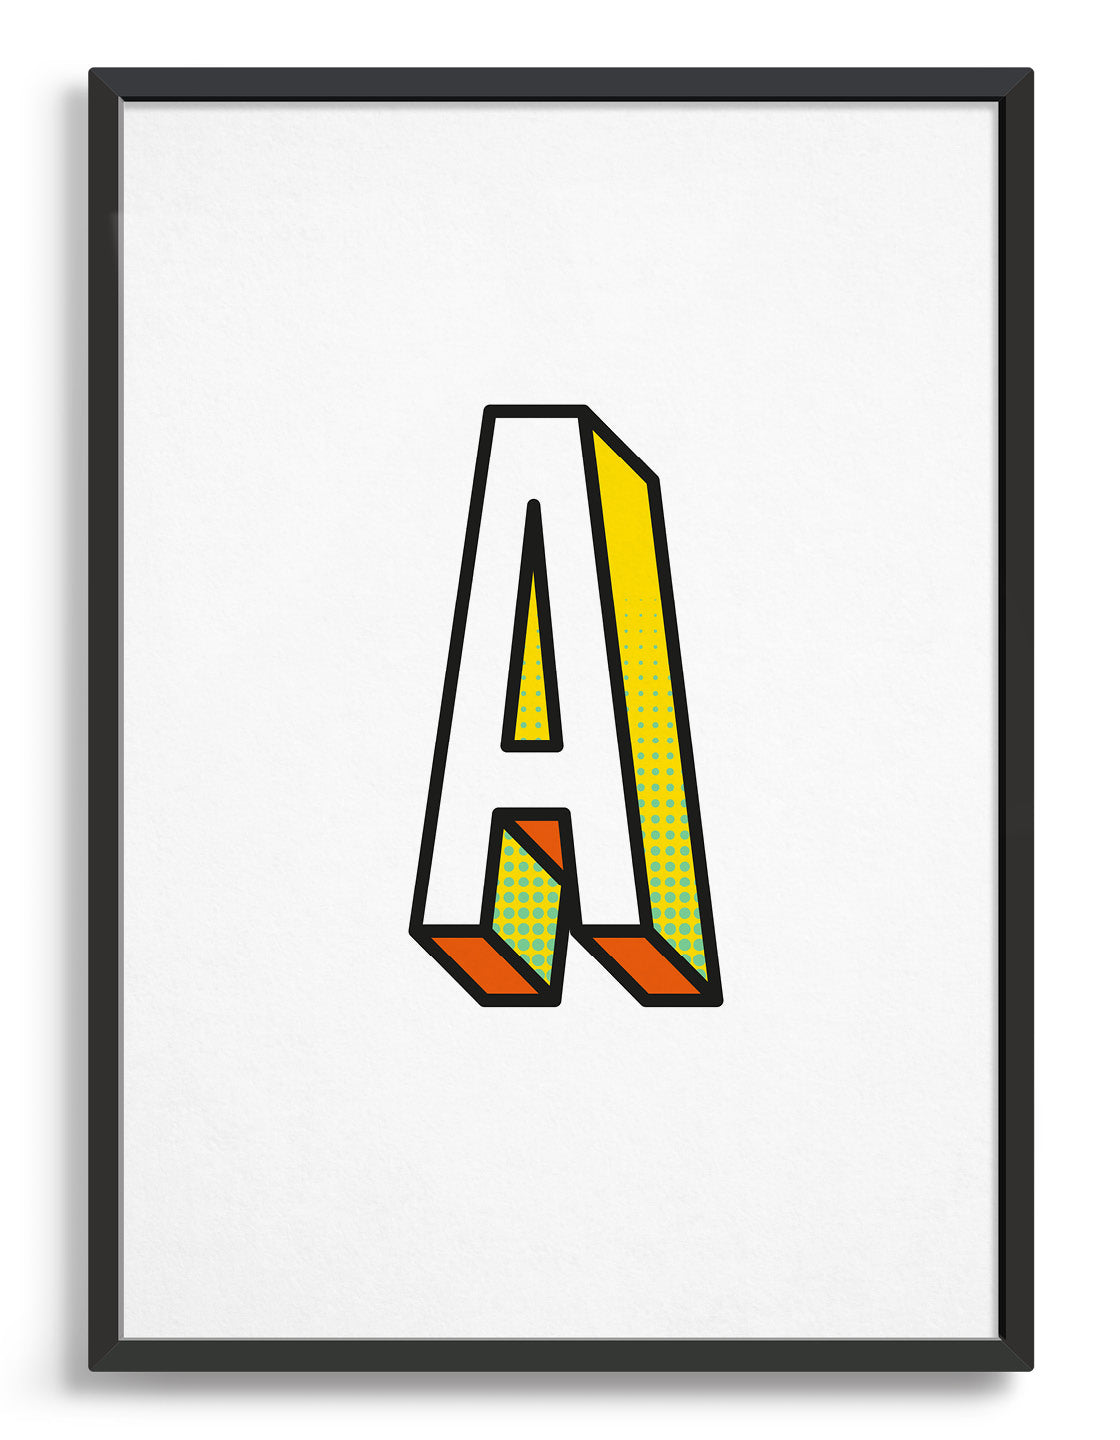 Letter A 3D style initial print with black outline and yellow and orange detail against a white background